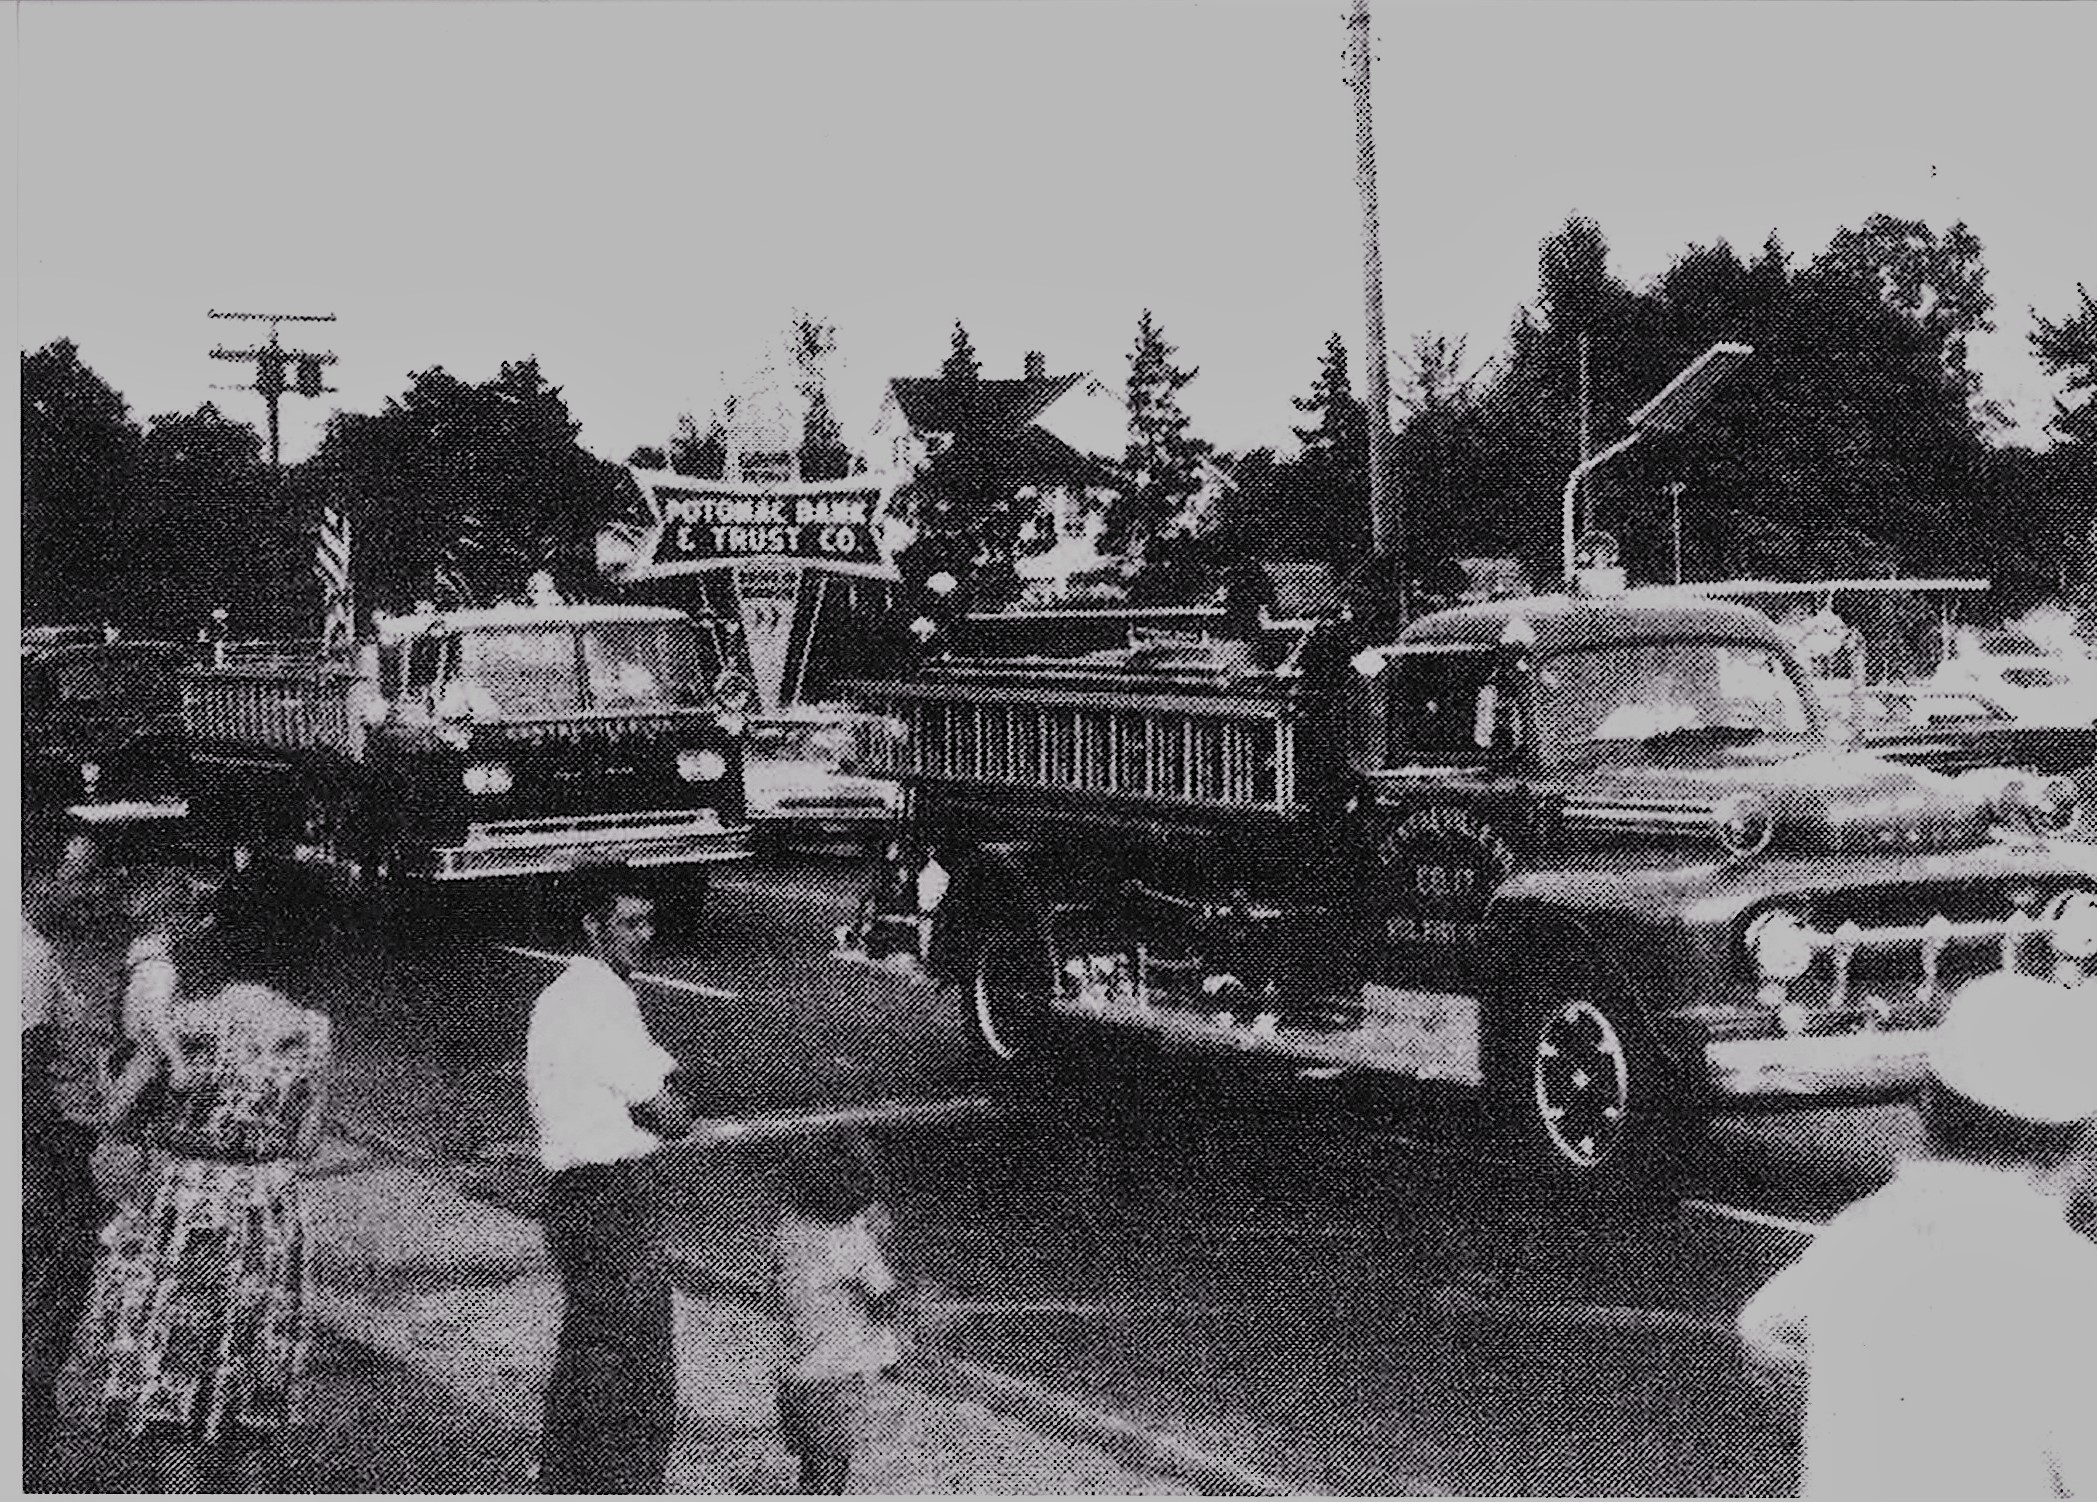 1960s Parade down Rt. 29 in Centreville. Looking south east toward Pickwick Road.